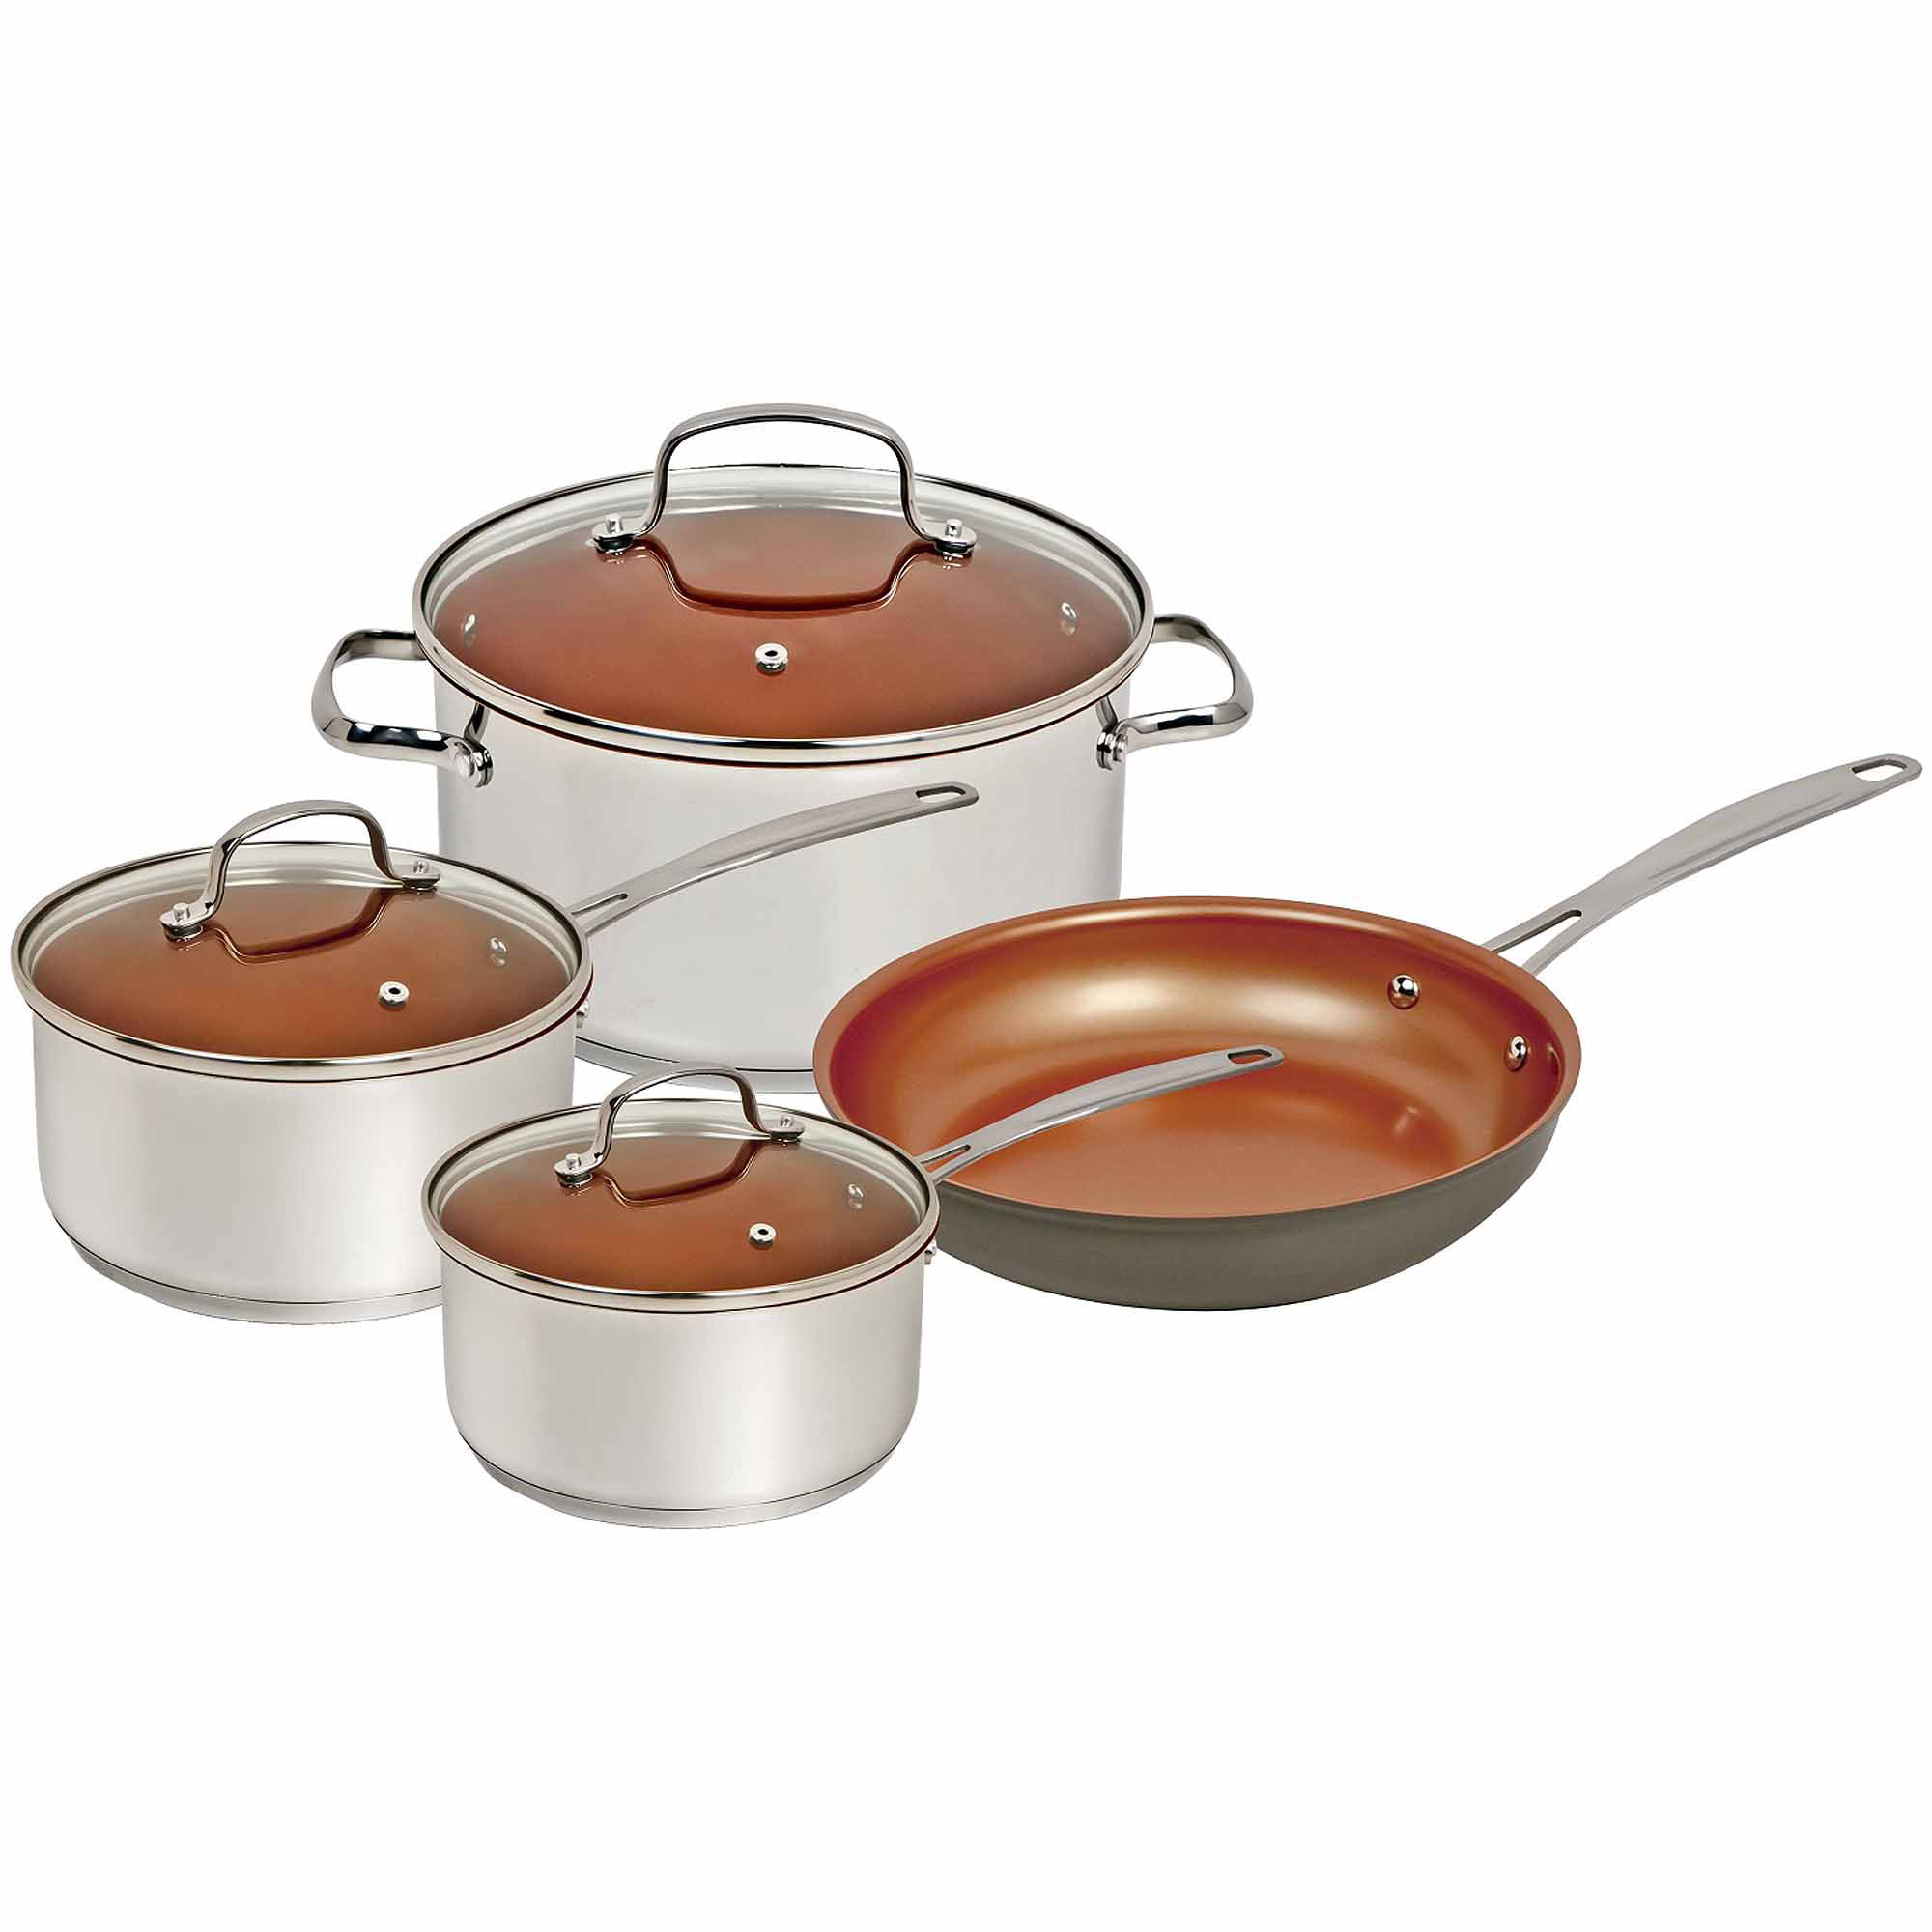 nuwave 7-piece cookware set, silver - walmart